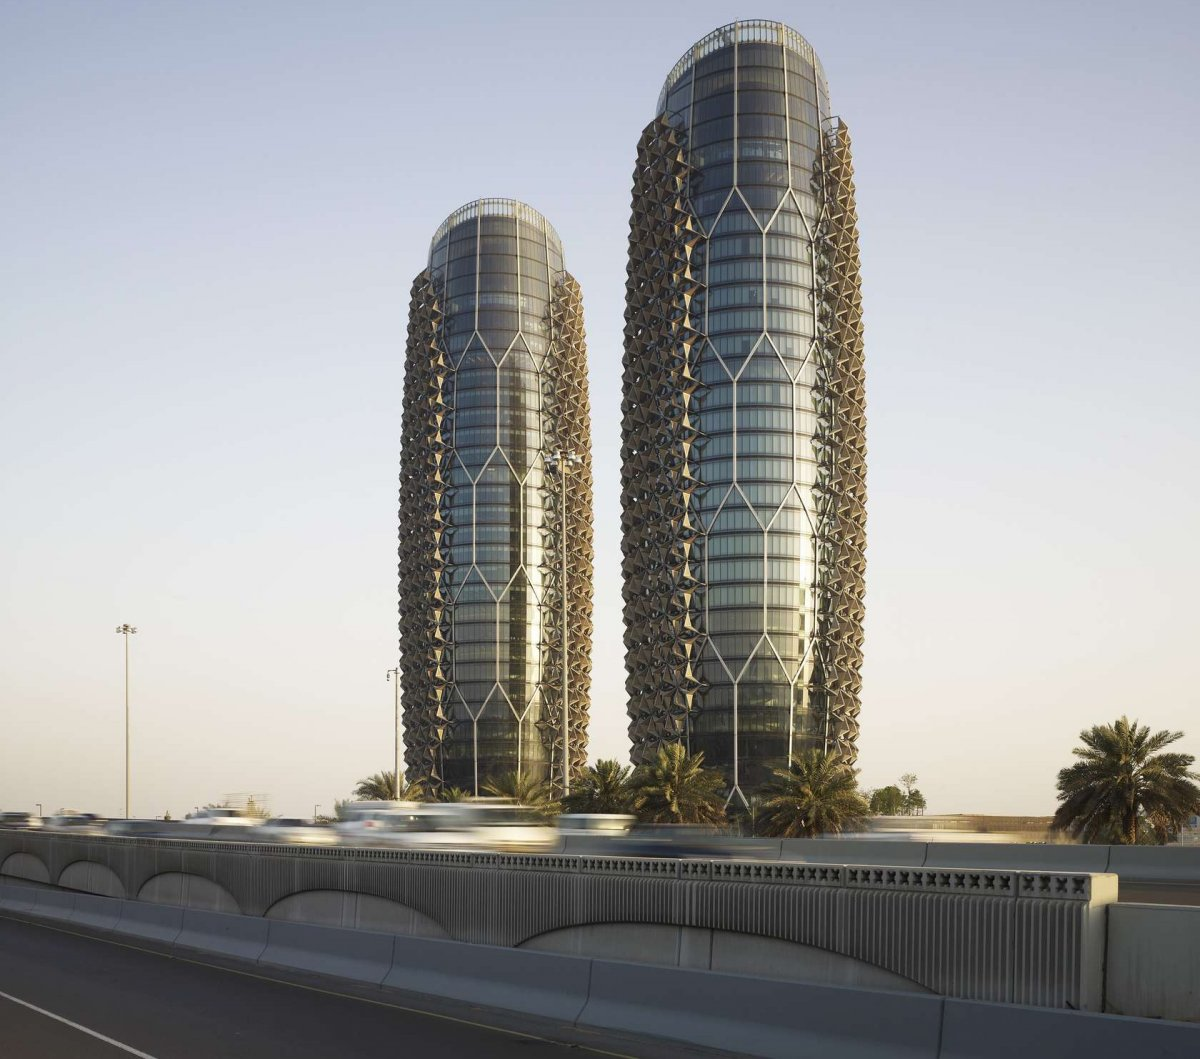 al-bahr-towers-abu-dhabi-aedas-architects